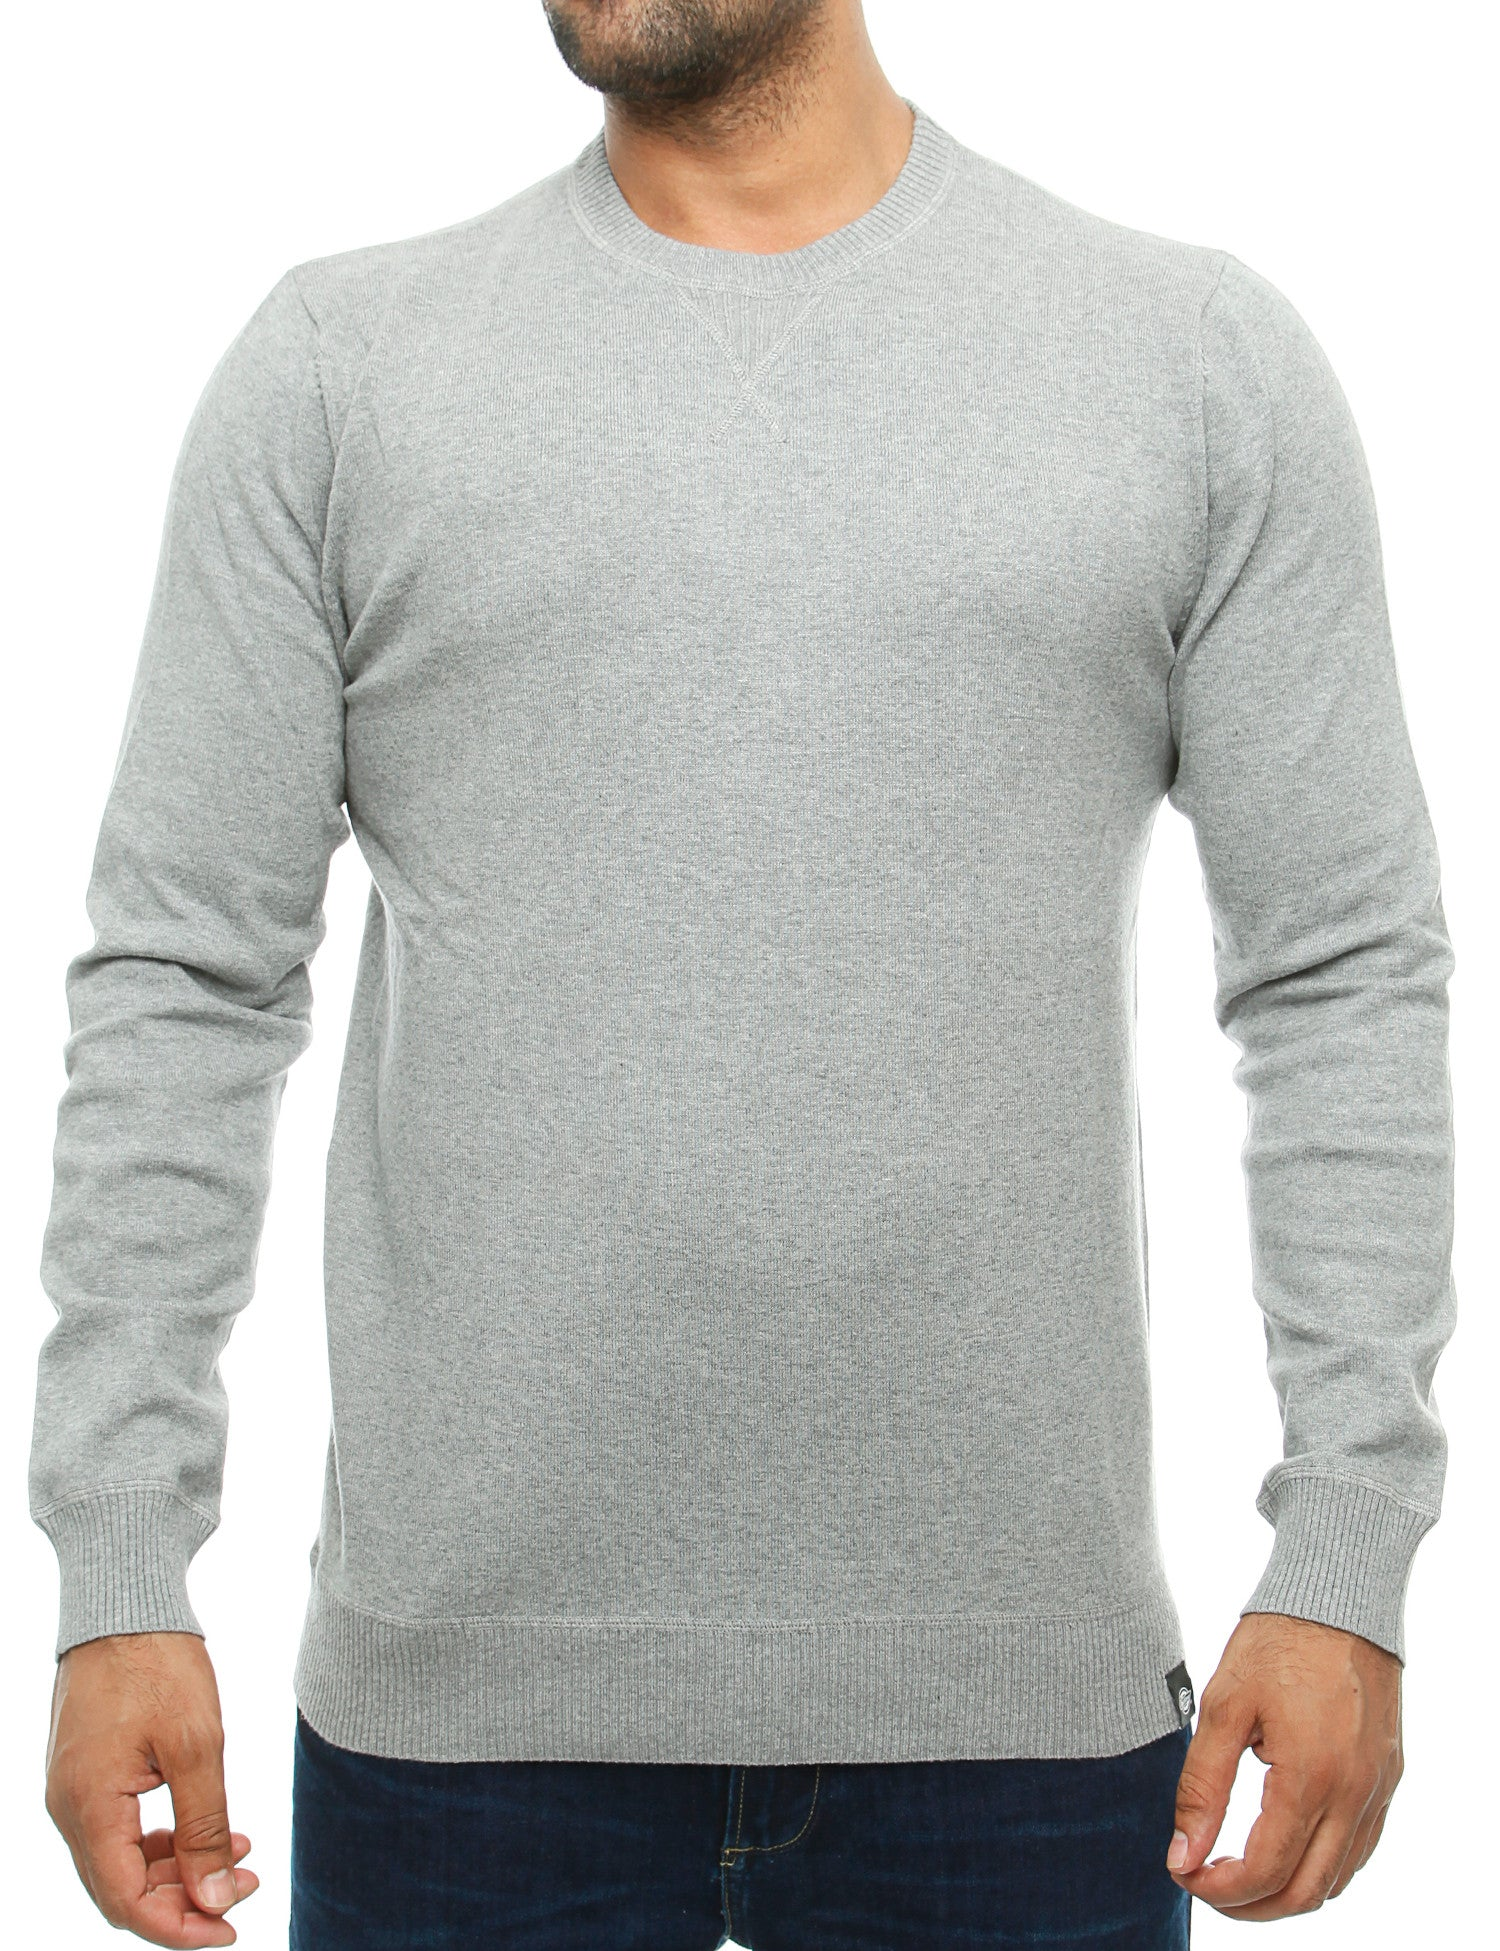 Dickies Myrtle Grove Crewneck 04 200085 Grey